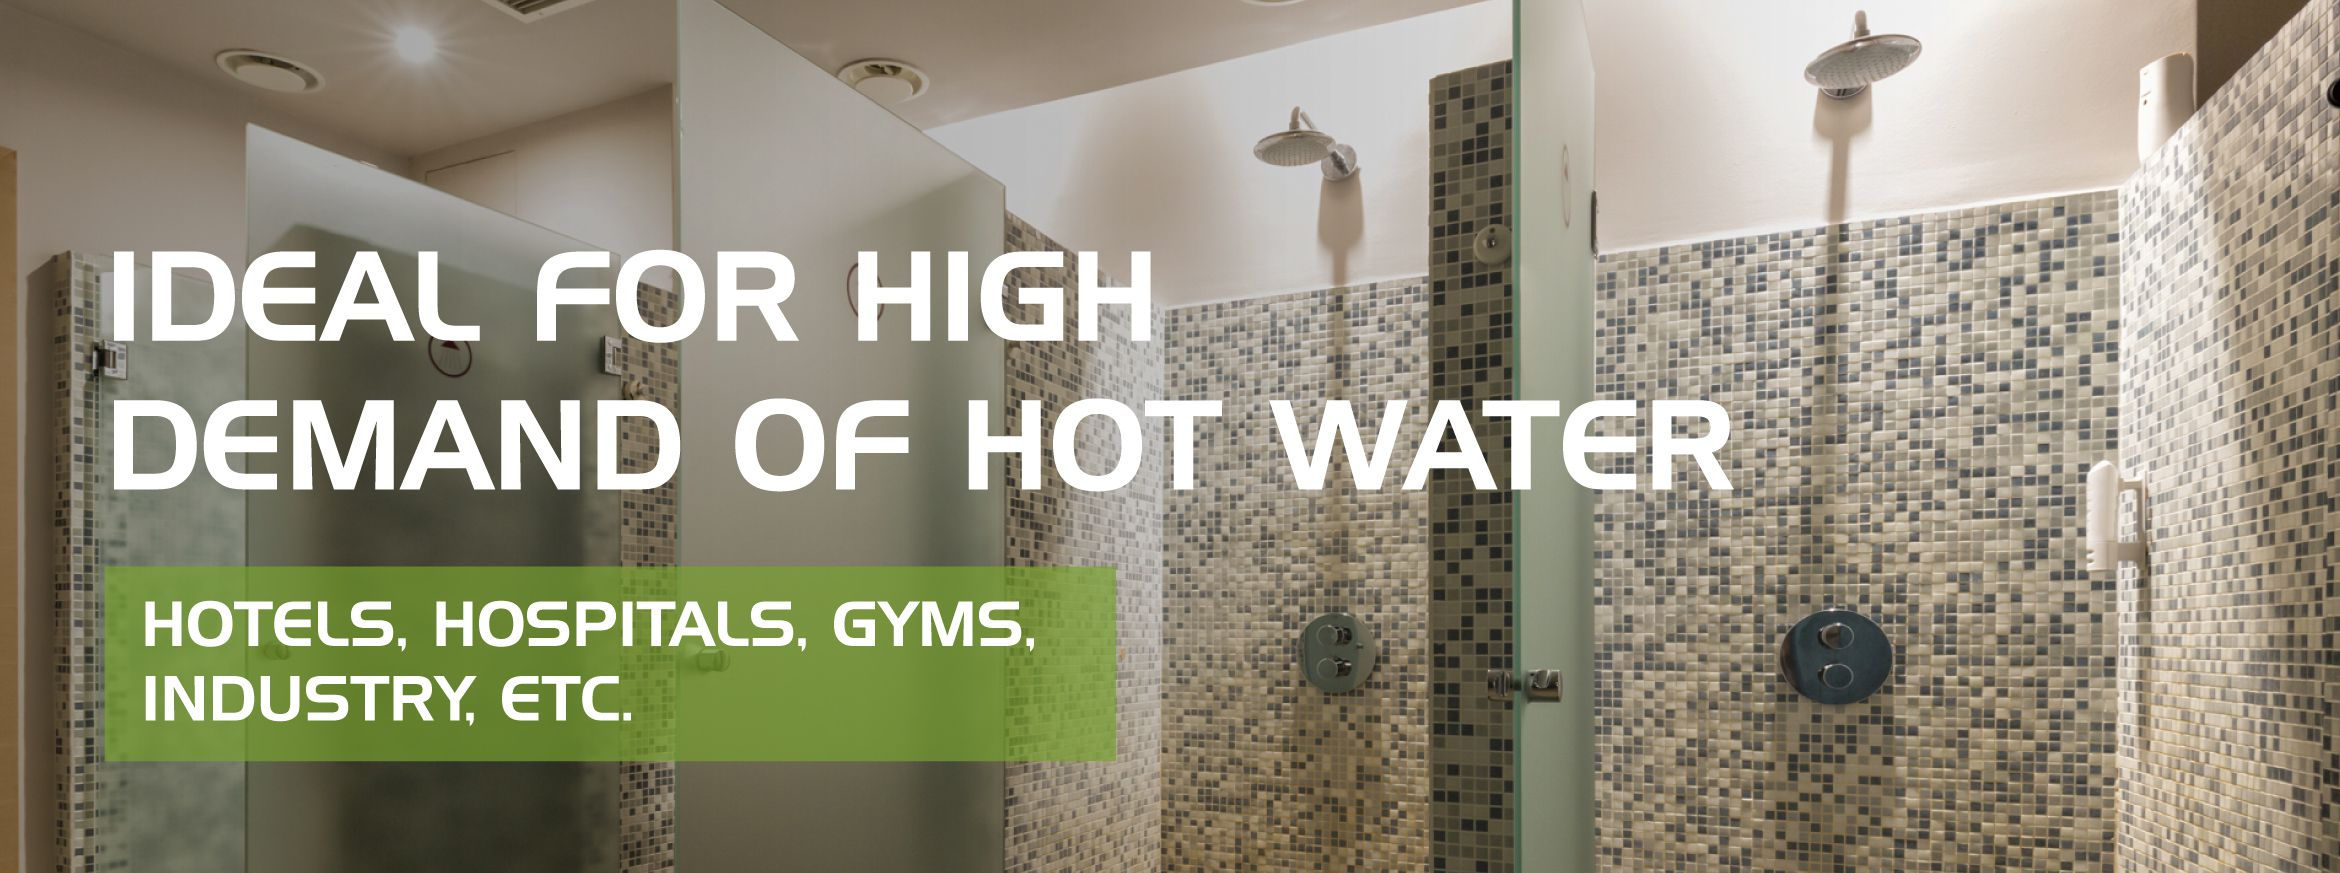 Thermodynamic solar hot water system for businesses, commercial, gyms, hotels, camp sites, restaurants, schools, hospitals